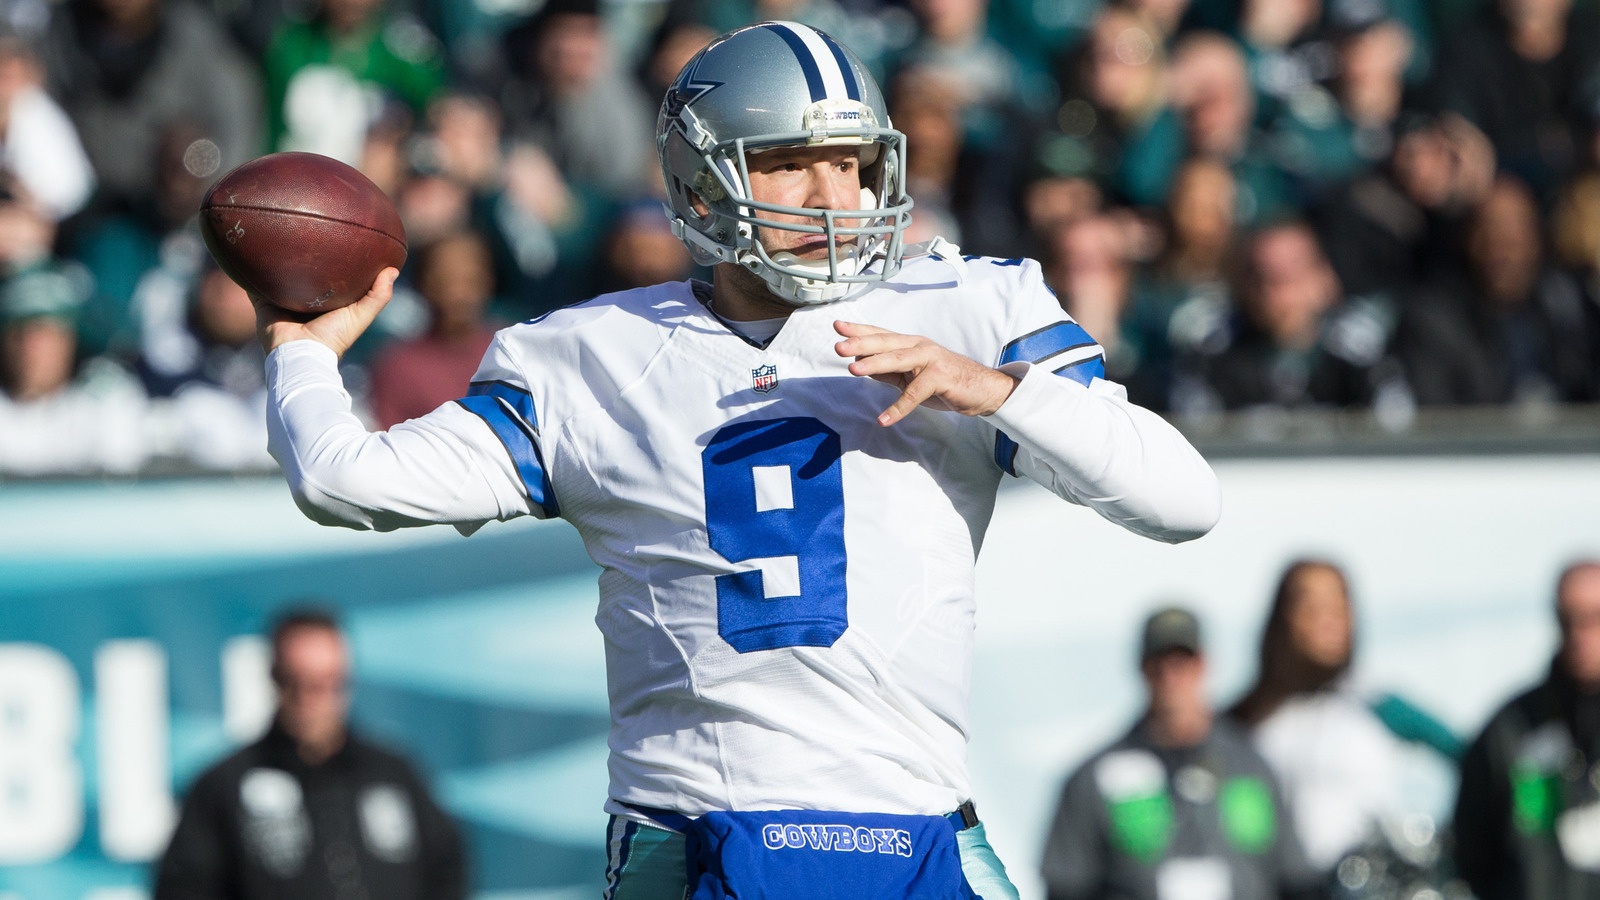 Report: Cowboys to release Romo in coming weeks